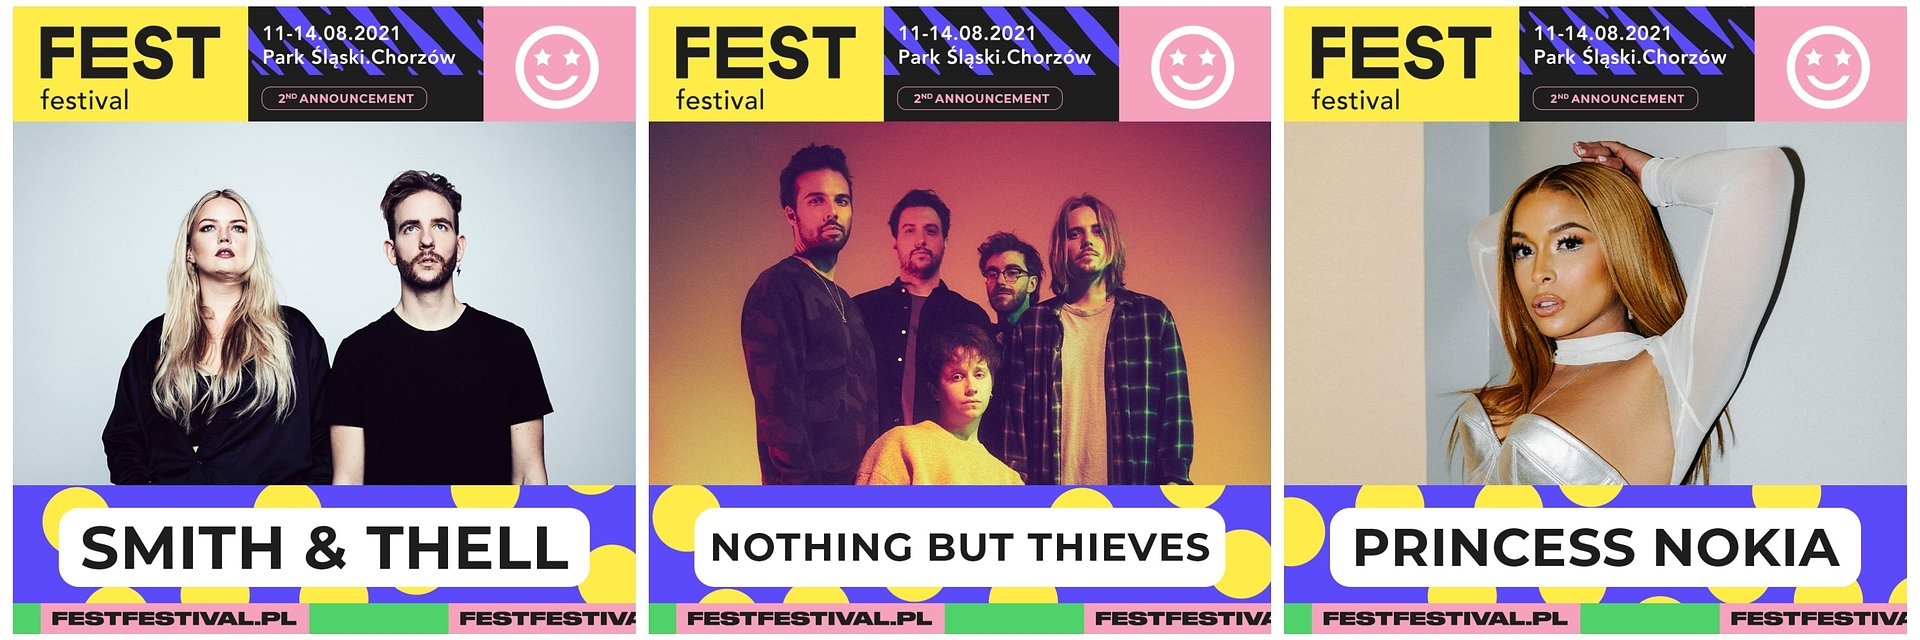 Nothing But Thieves, Princess Nokia i Smith & Thell na Fest Festival